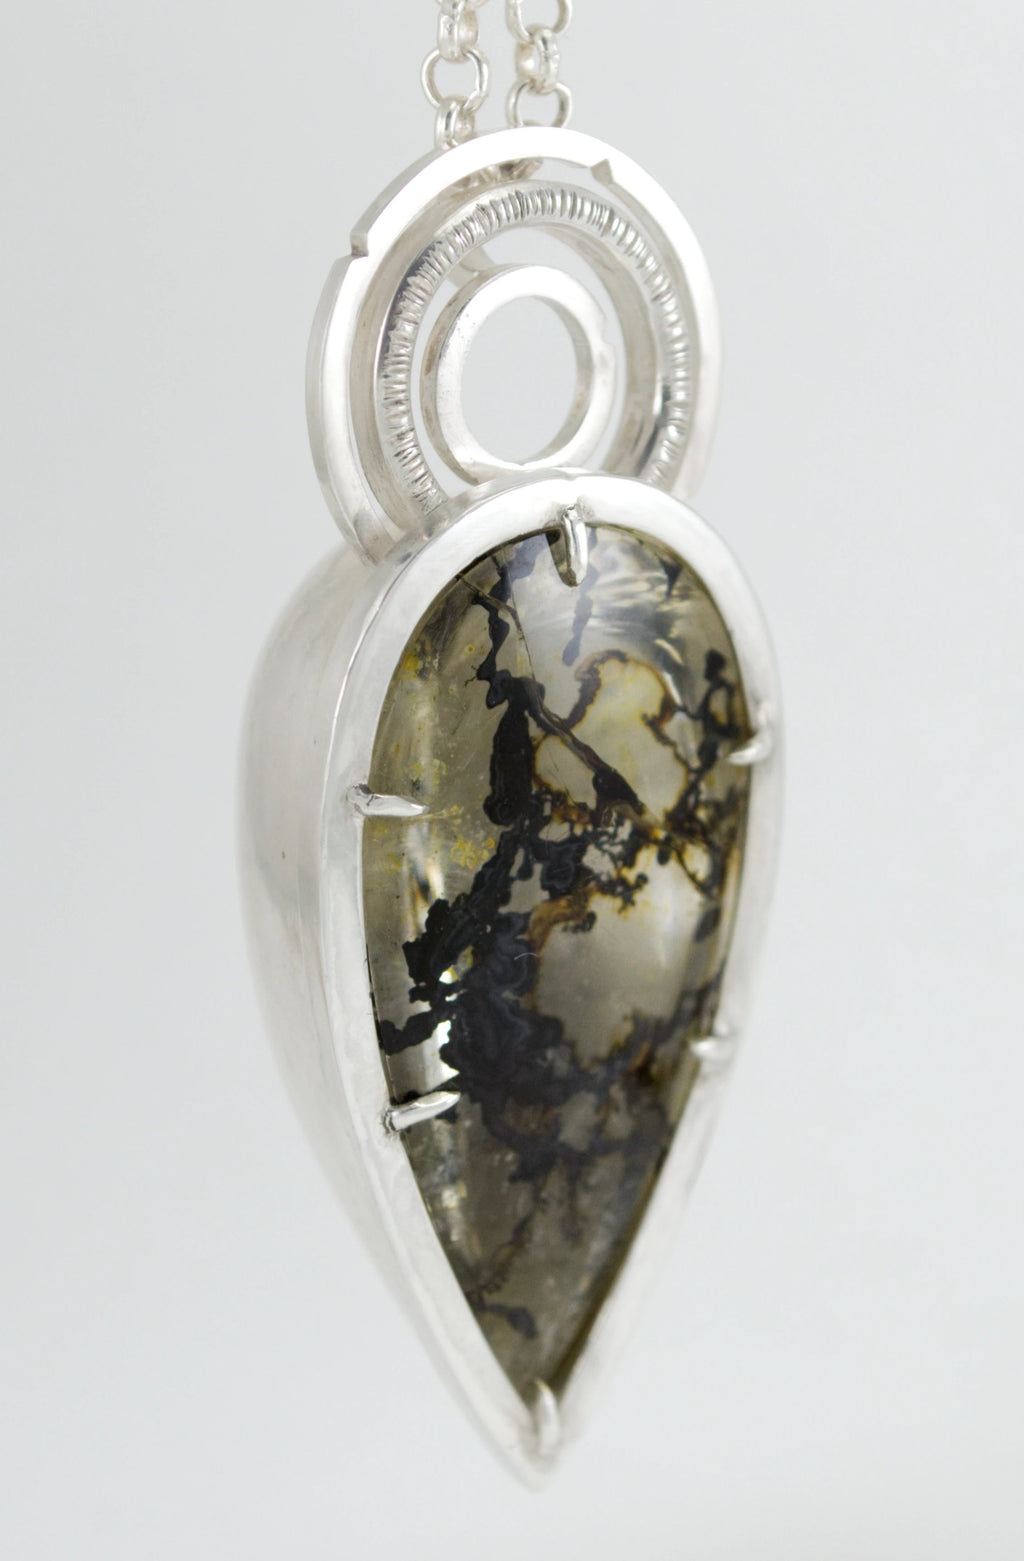 Dendritic Quartz Deco Statement Necklace